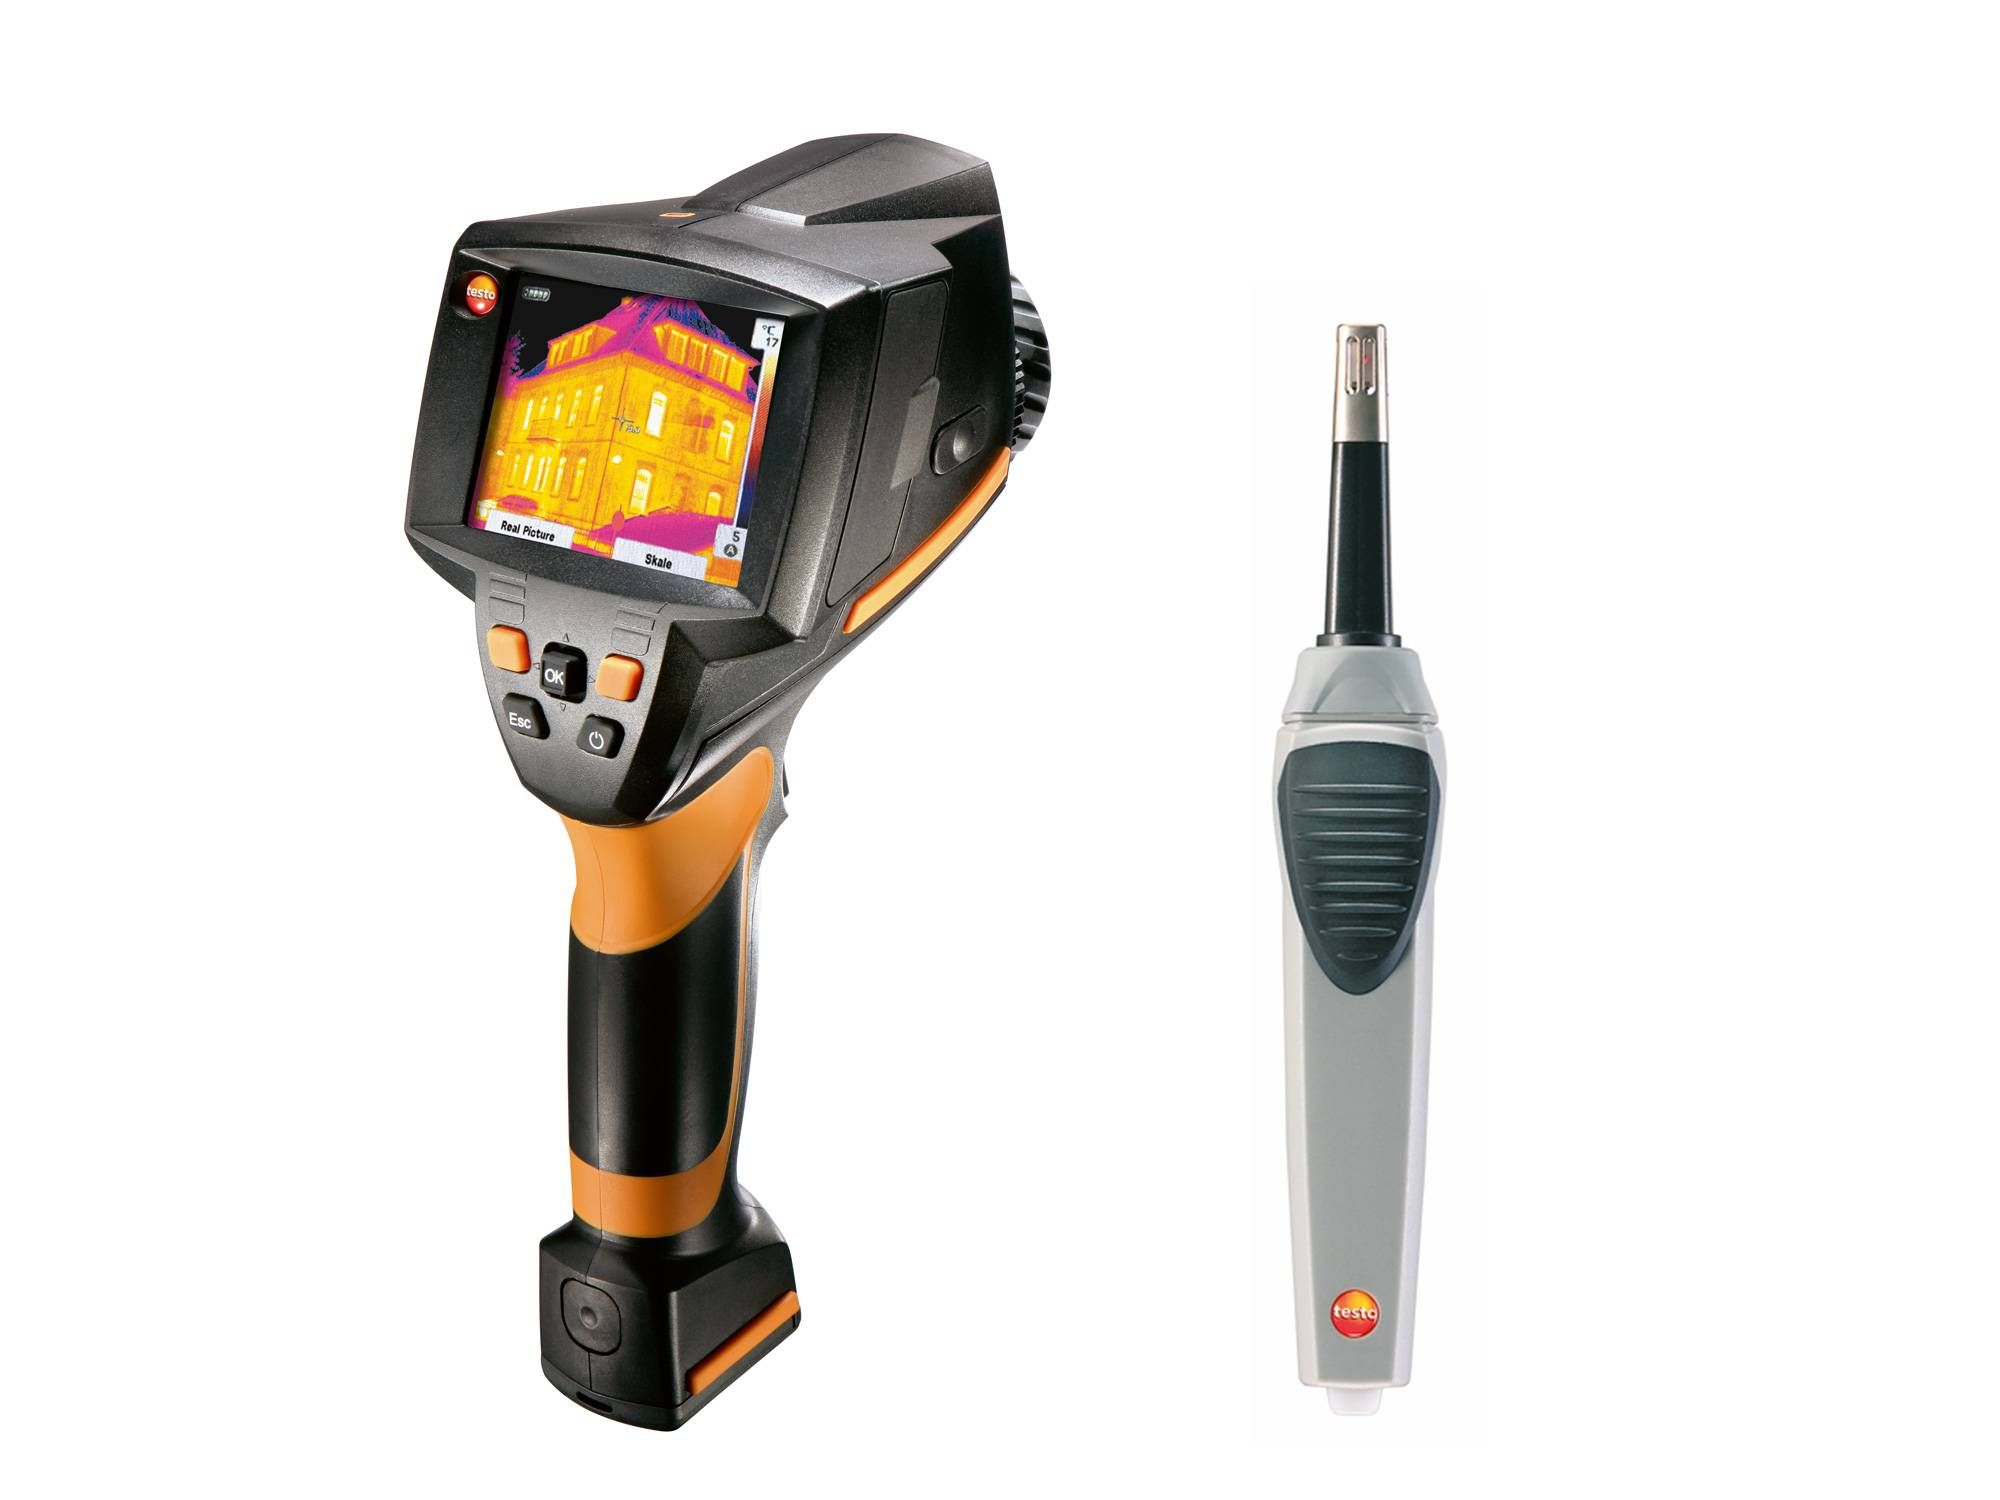 testo 875-2i Baudiagnose Set